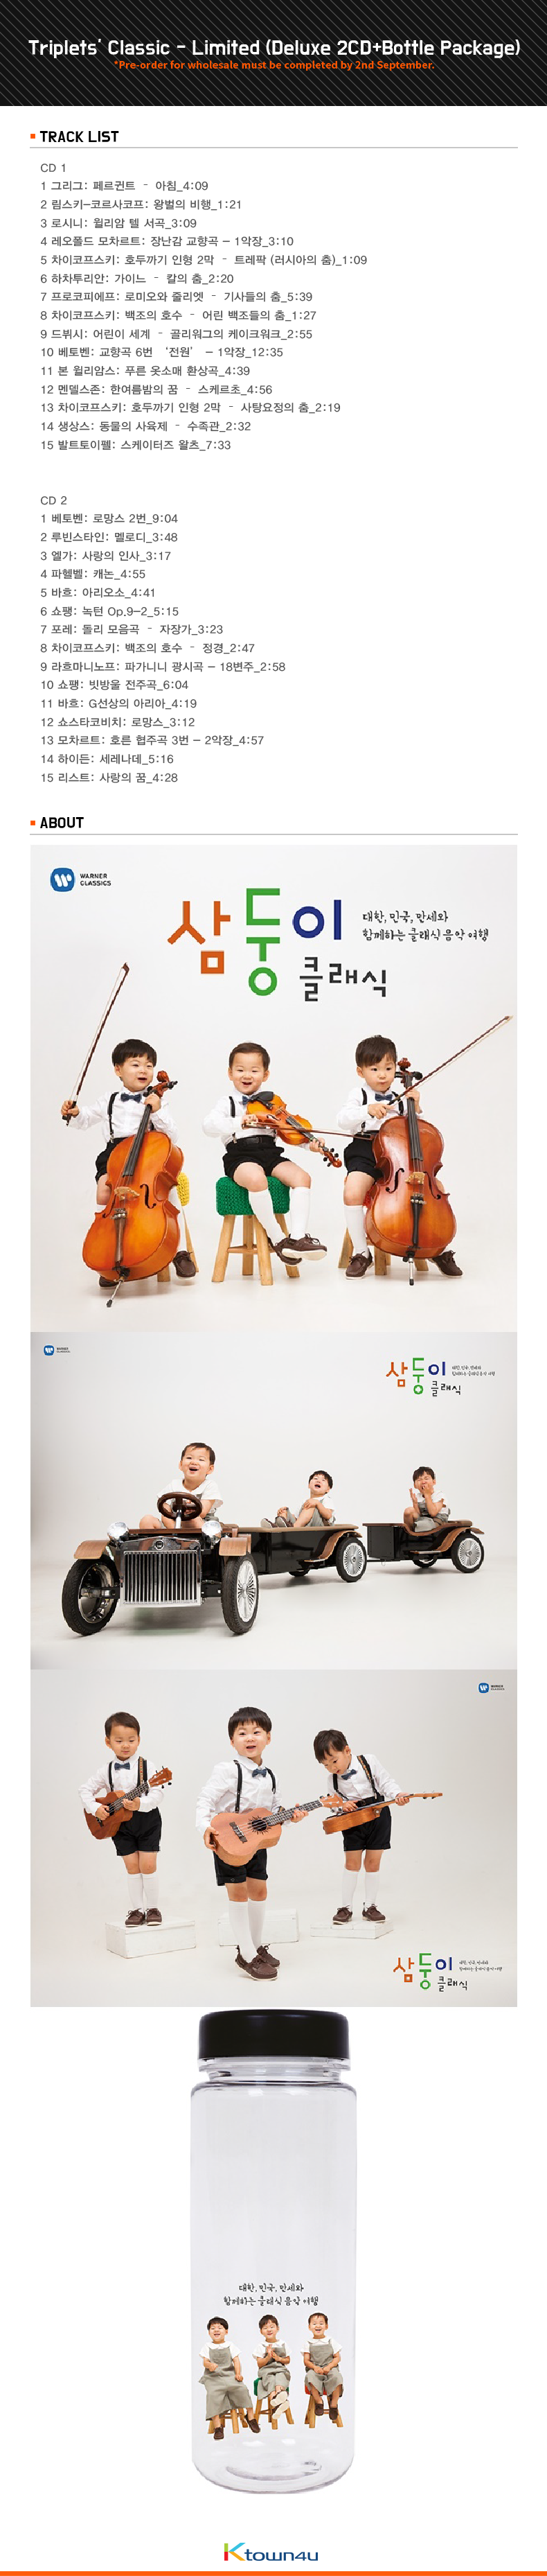 Poster + Triplets' Classic - Limited (Deluxe 2CD+Bottle Package)